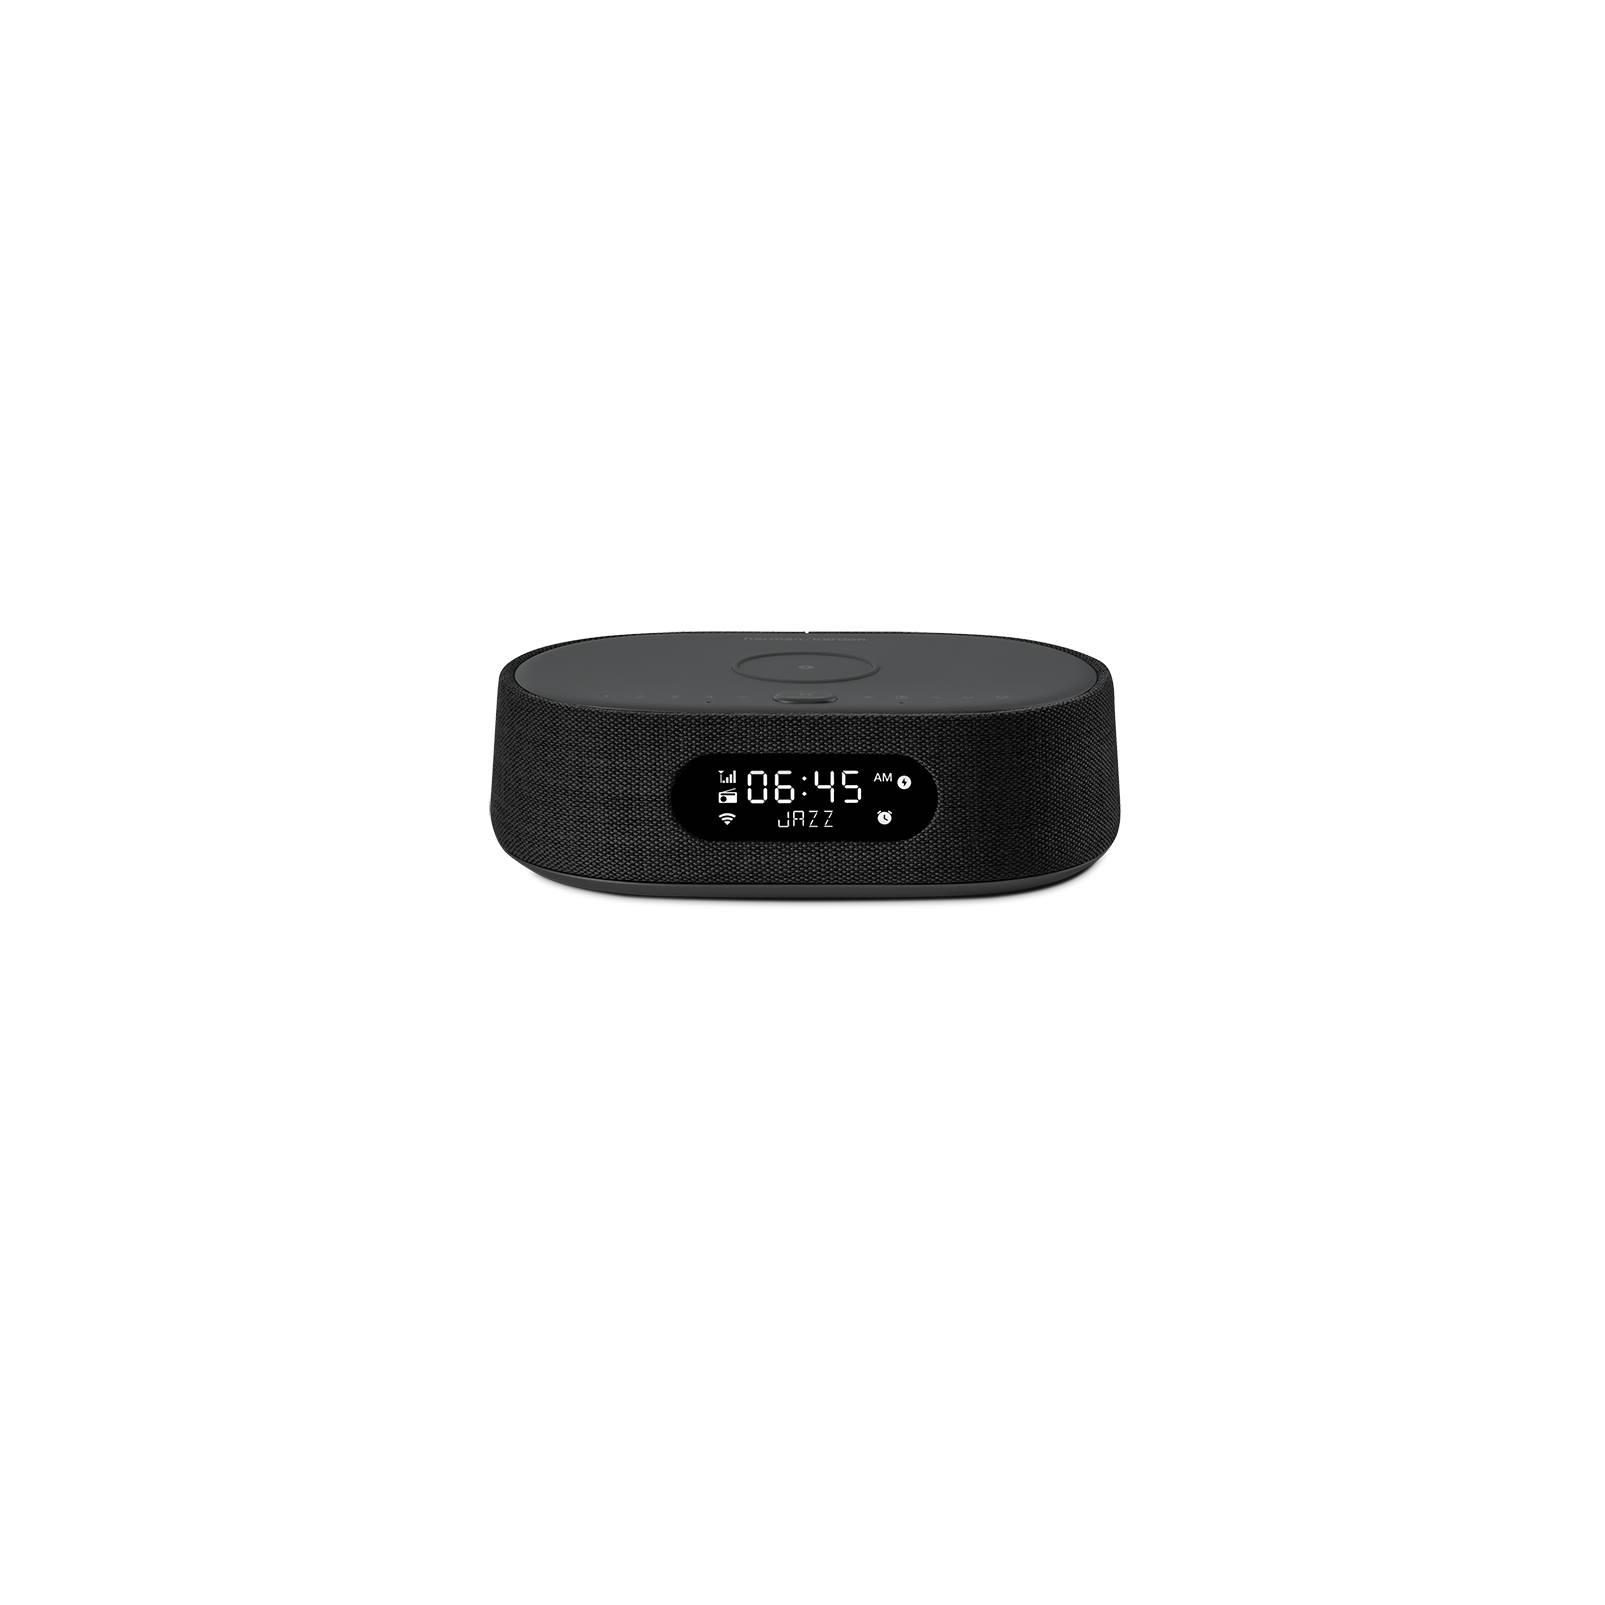 Harman Kardon Citation Oasis FM - Black - Voice-controlled speaker with clock radio and wireless phone charging - Front